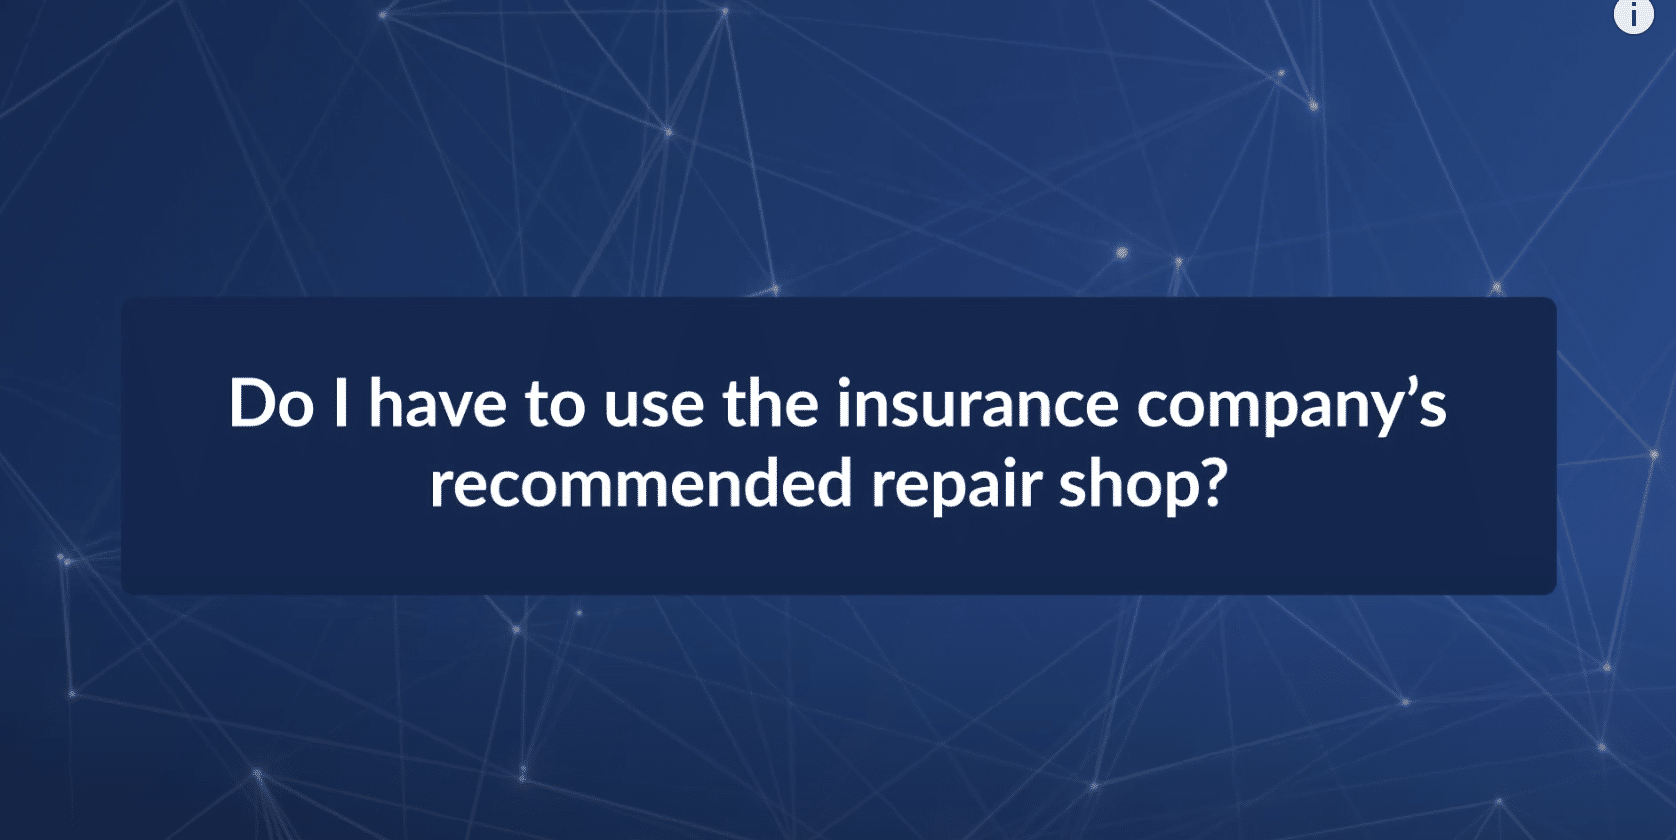 Do I Have to Use the Insurance Company's Recommended Repair Shop?